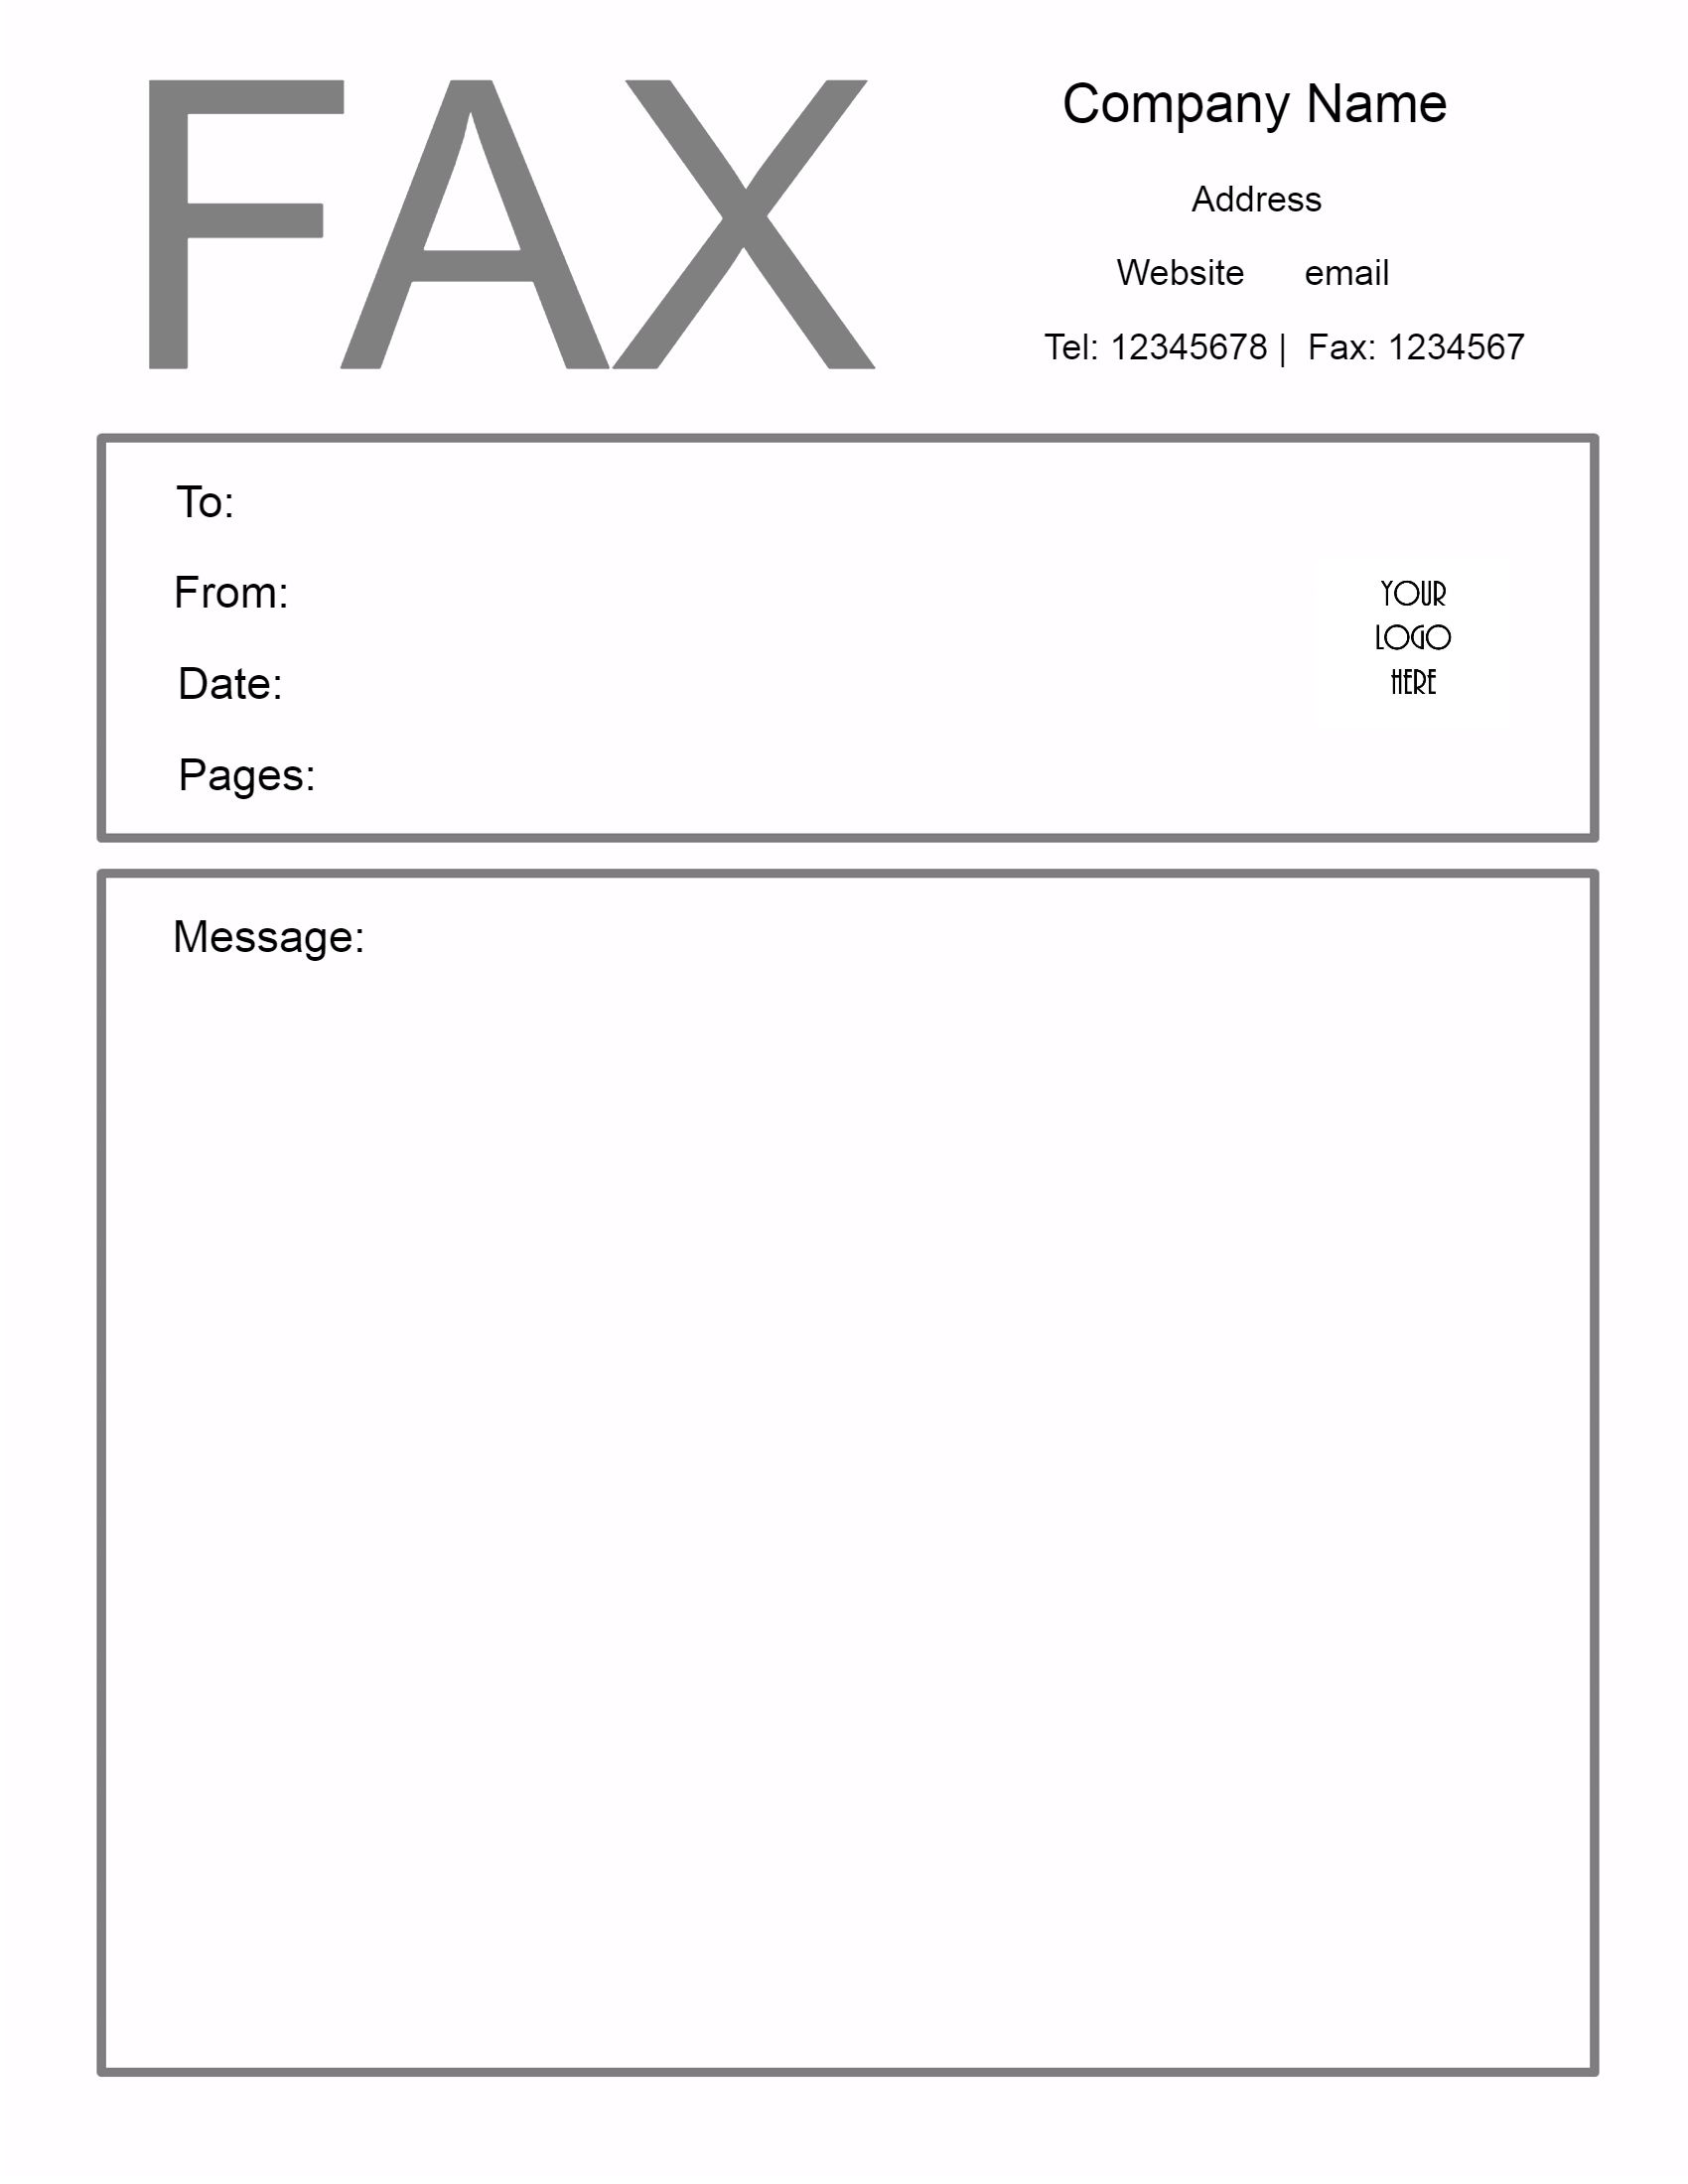 Superior Fax Cover Sheet Template